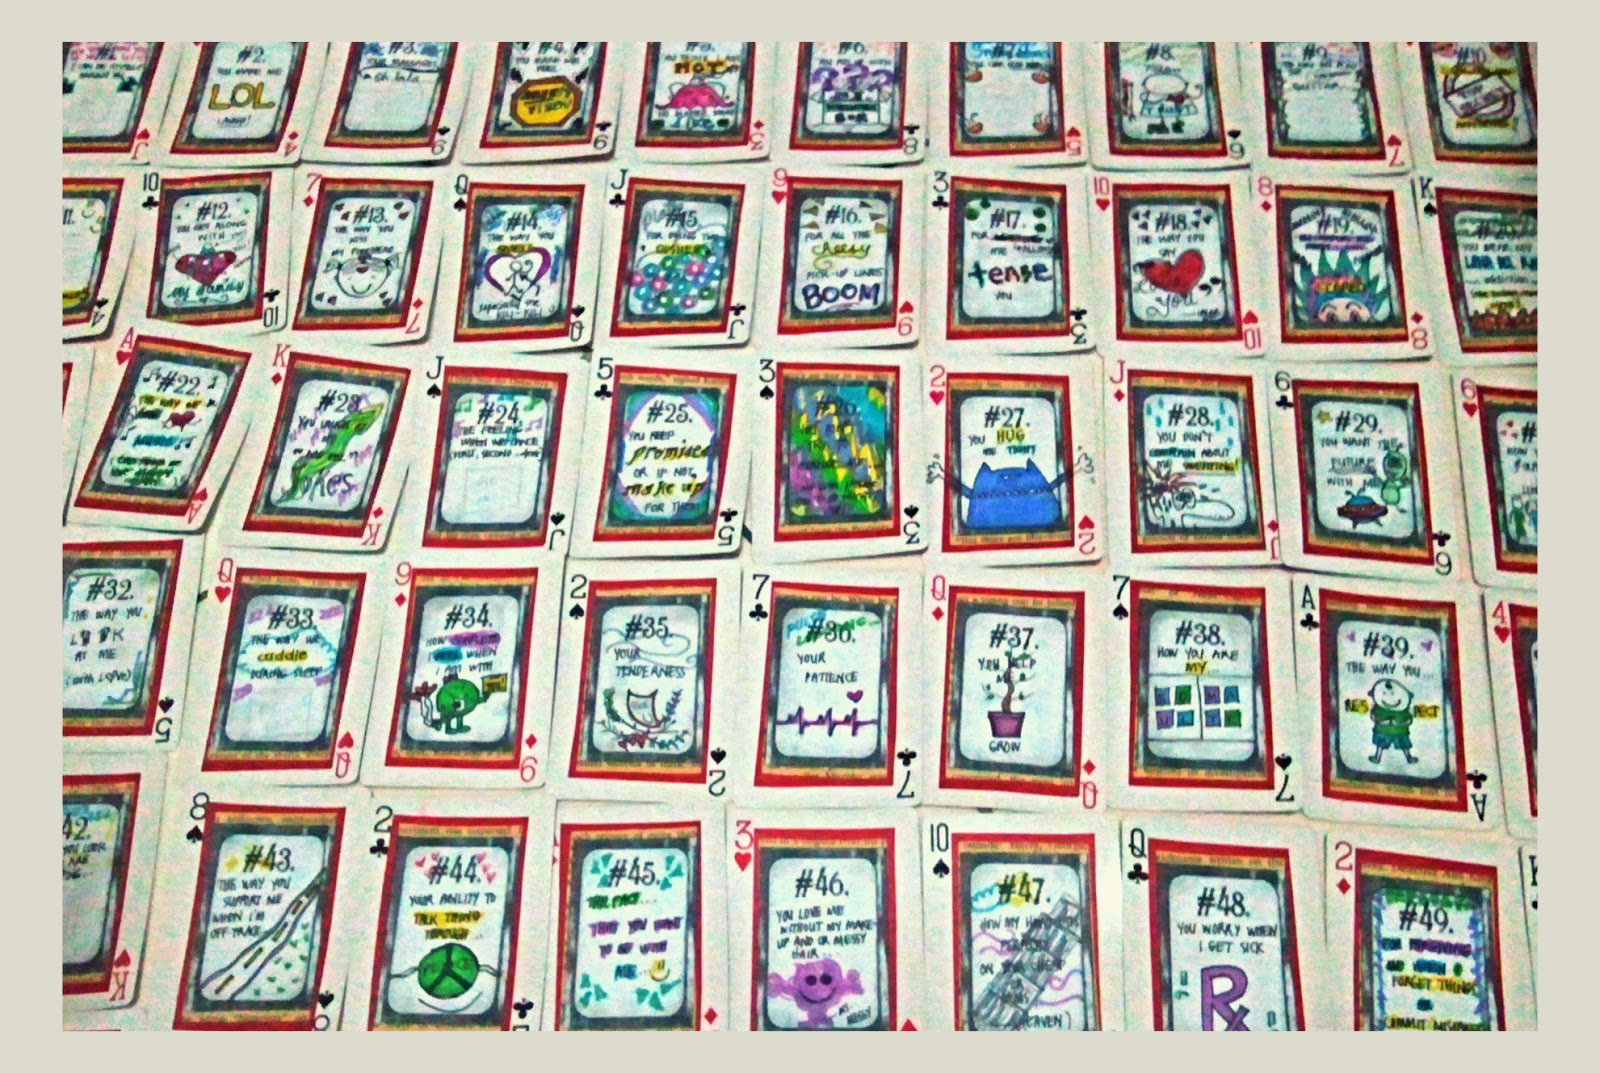 52 reasons i love you template free download - craft project 52 reasons i love you cards the artsy